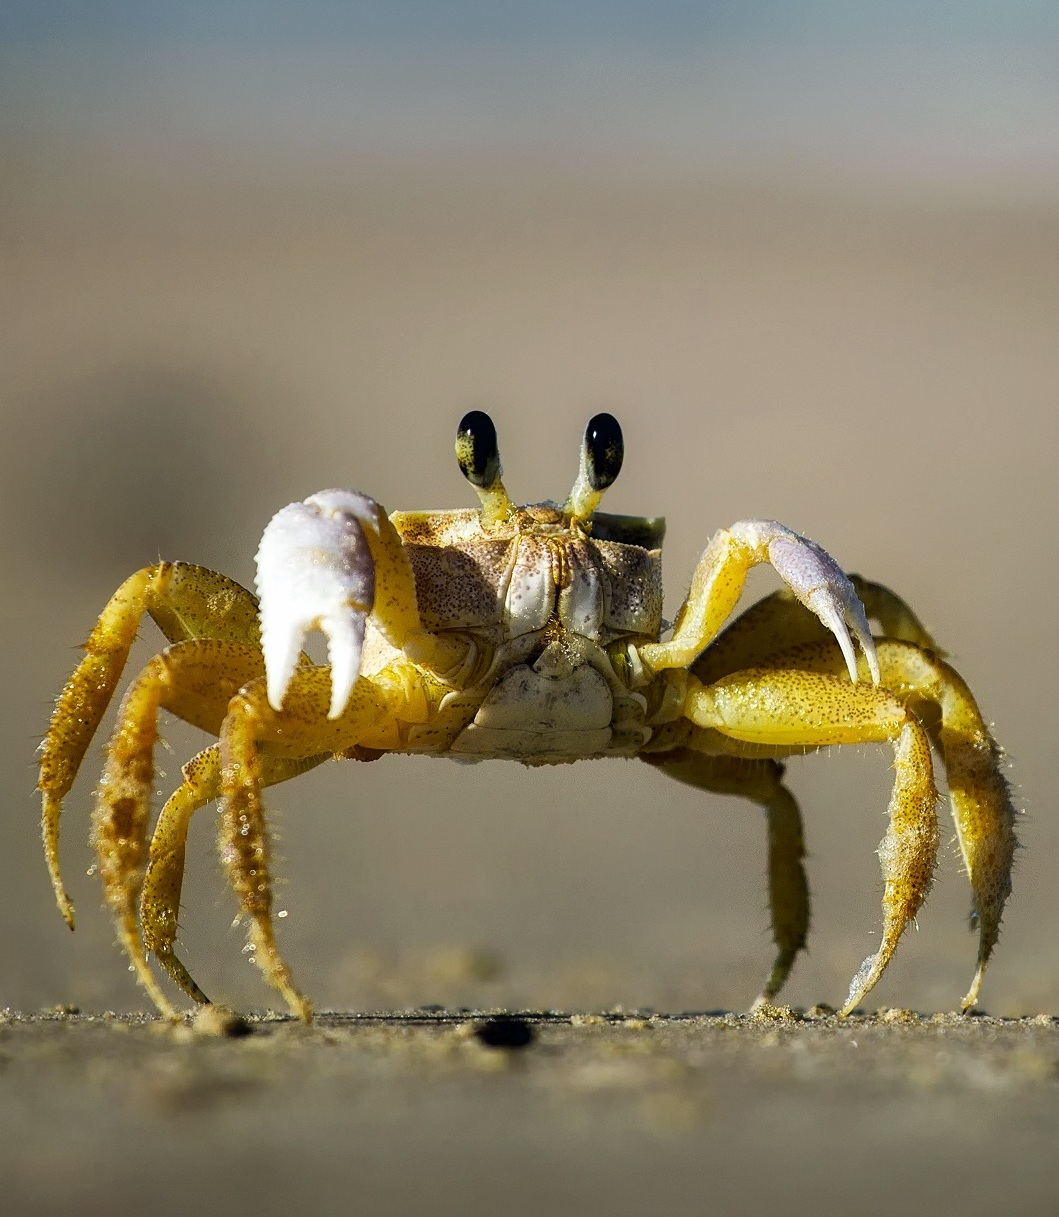 Picture of a crab.